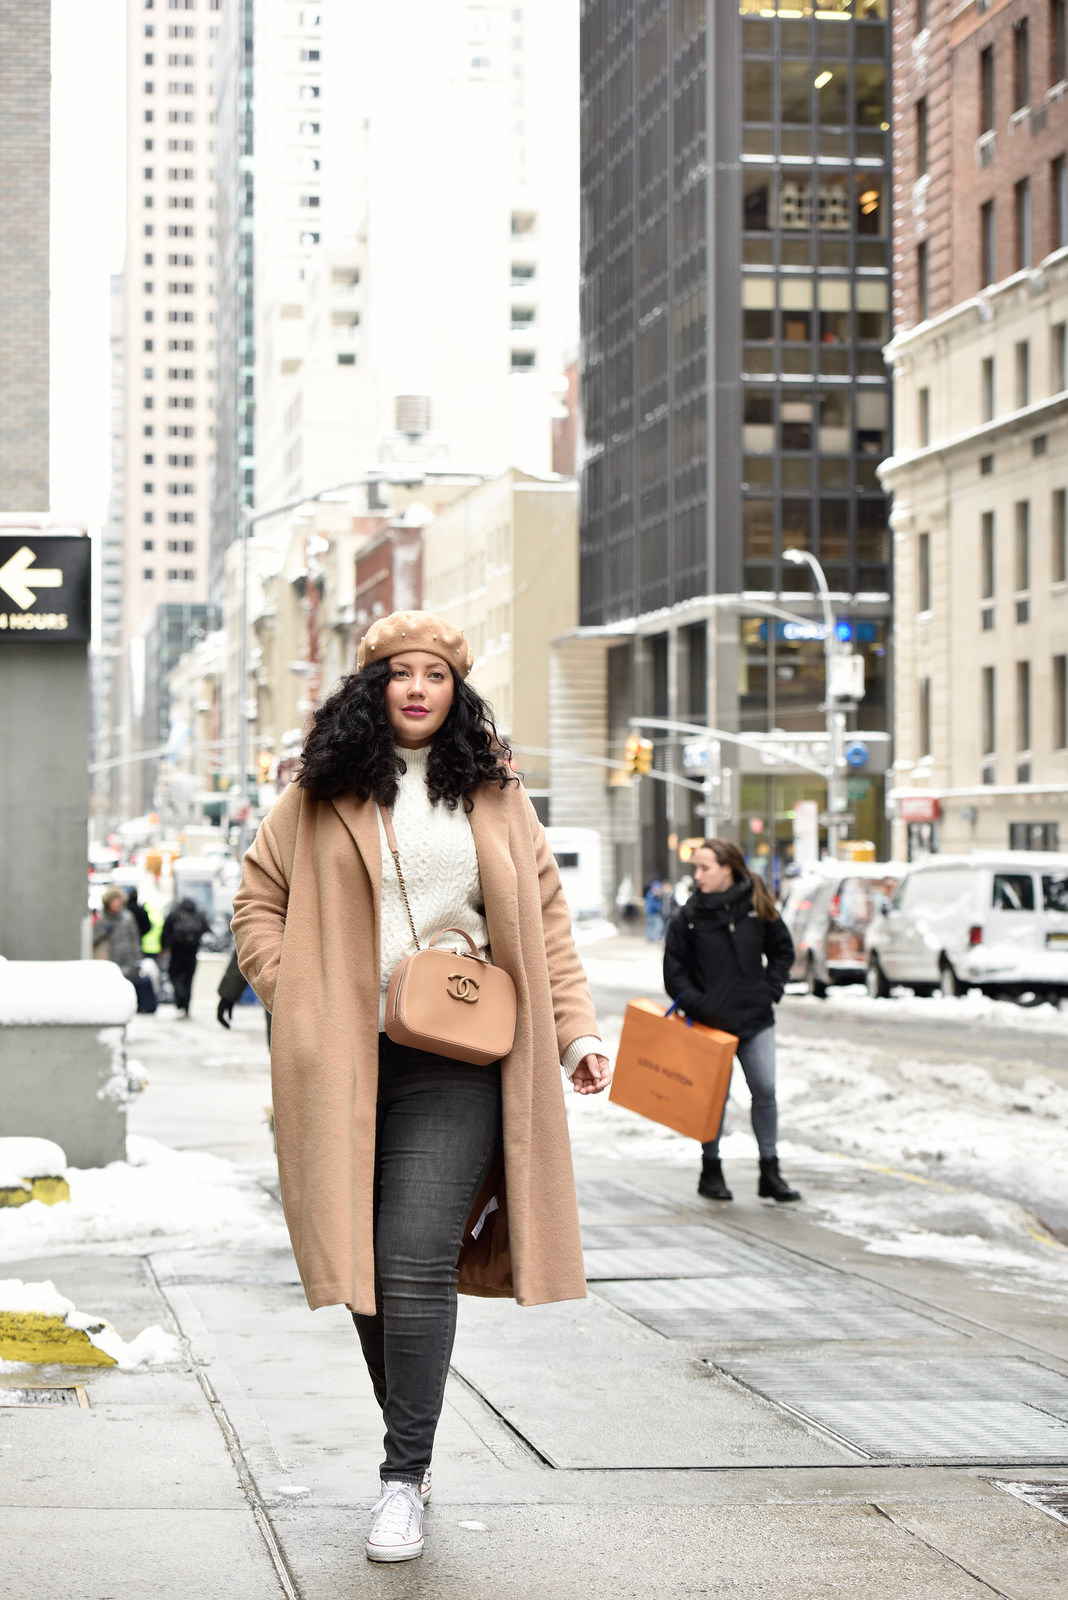 Girl with Curves featuring a pearl beret from nordstorm, camel coat from Asos, cream sweater from Asos, lipstick from sephora, plus size gray rockstar jeans from Old Navy, handbag from chanel, and shoes from converse